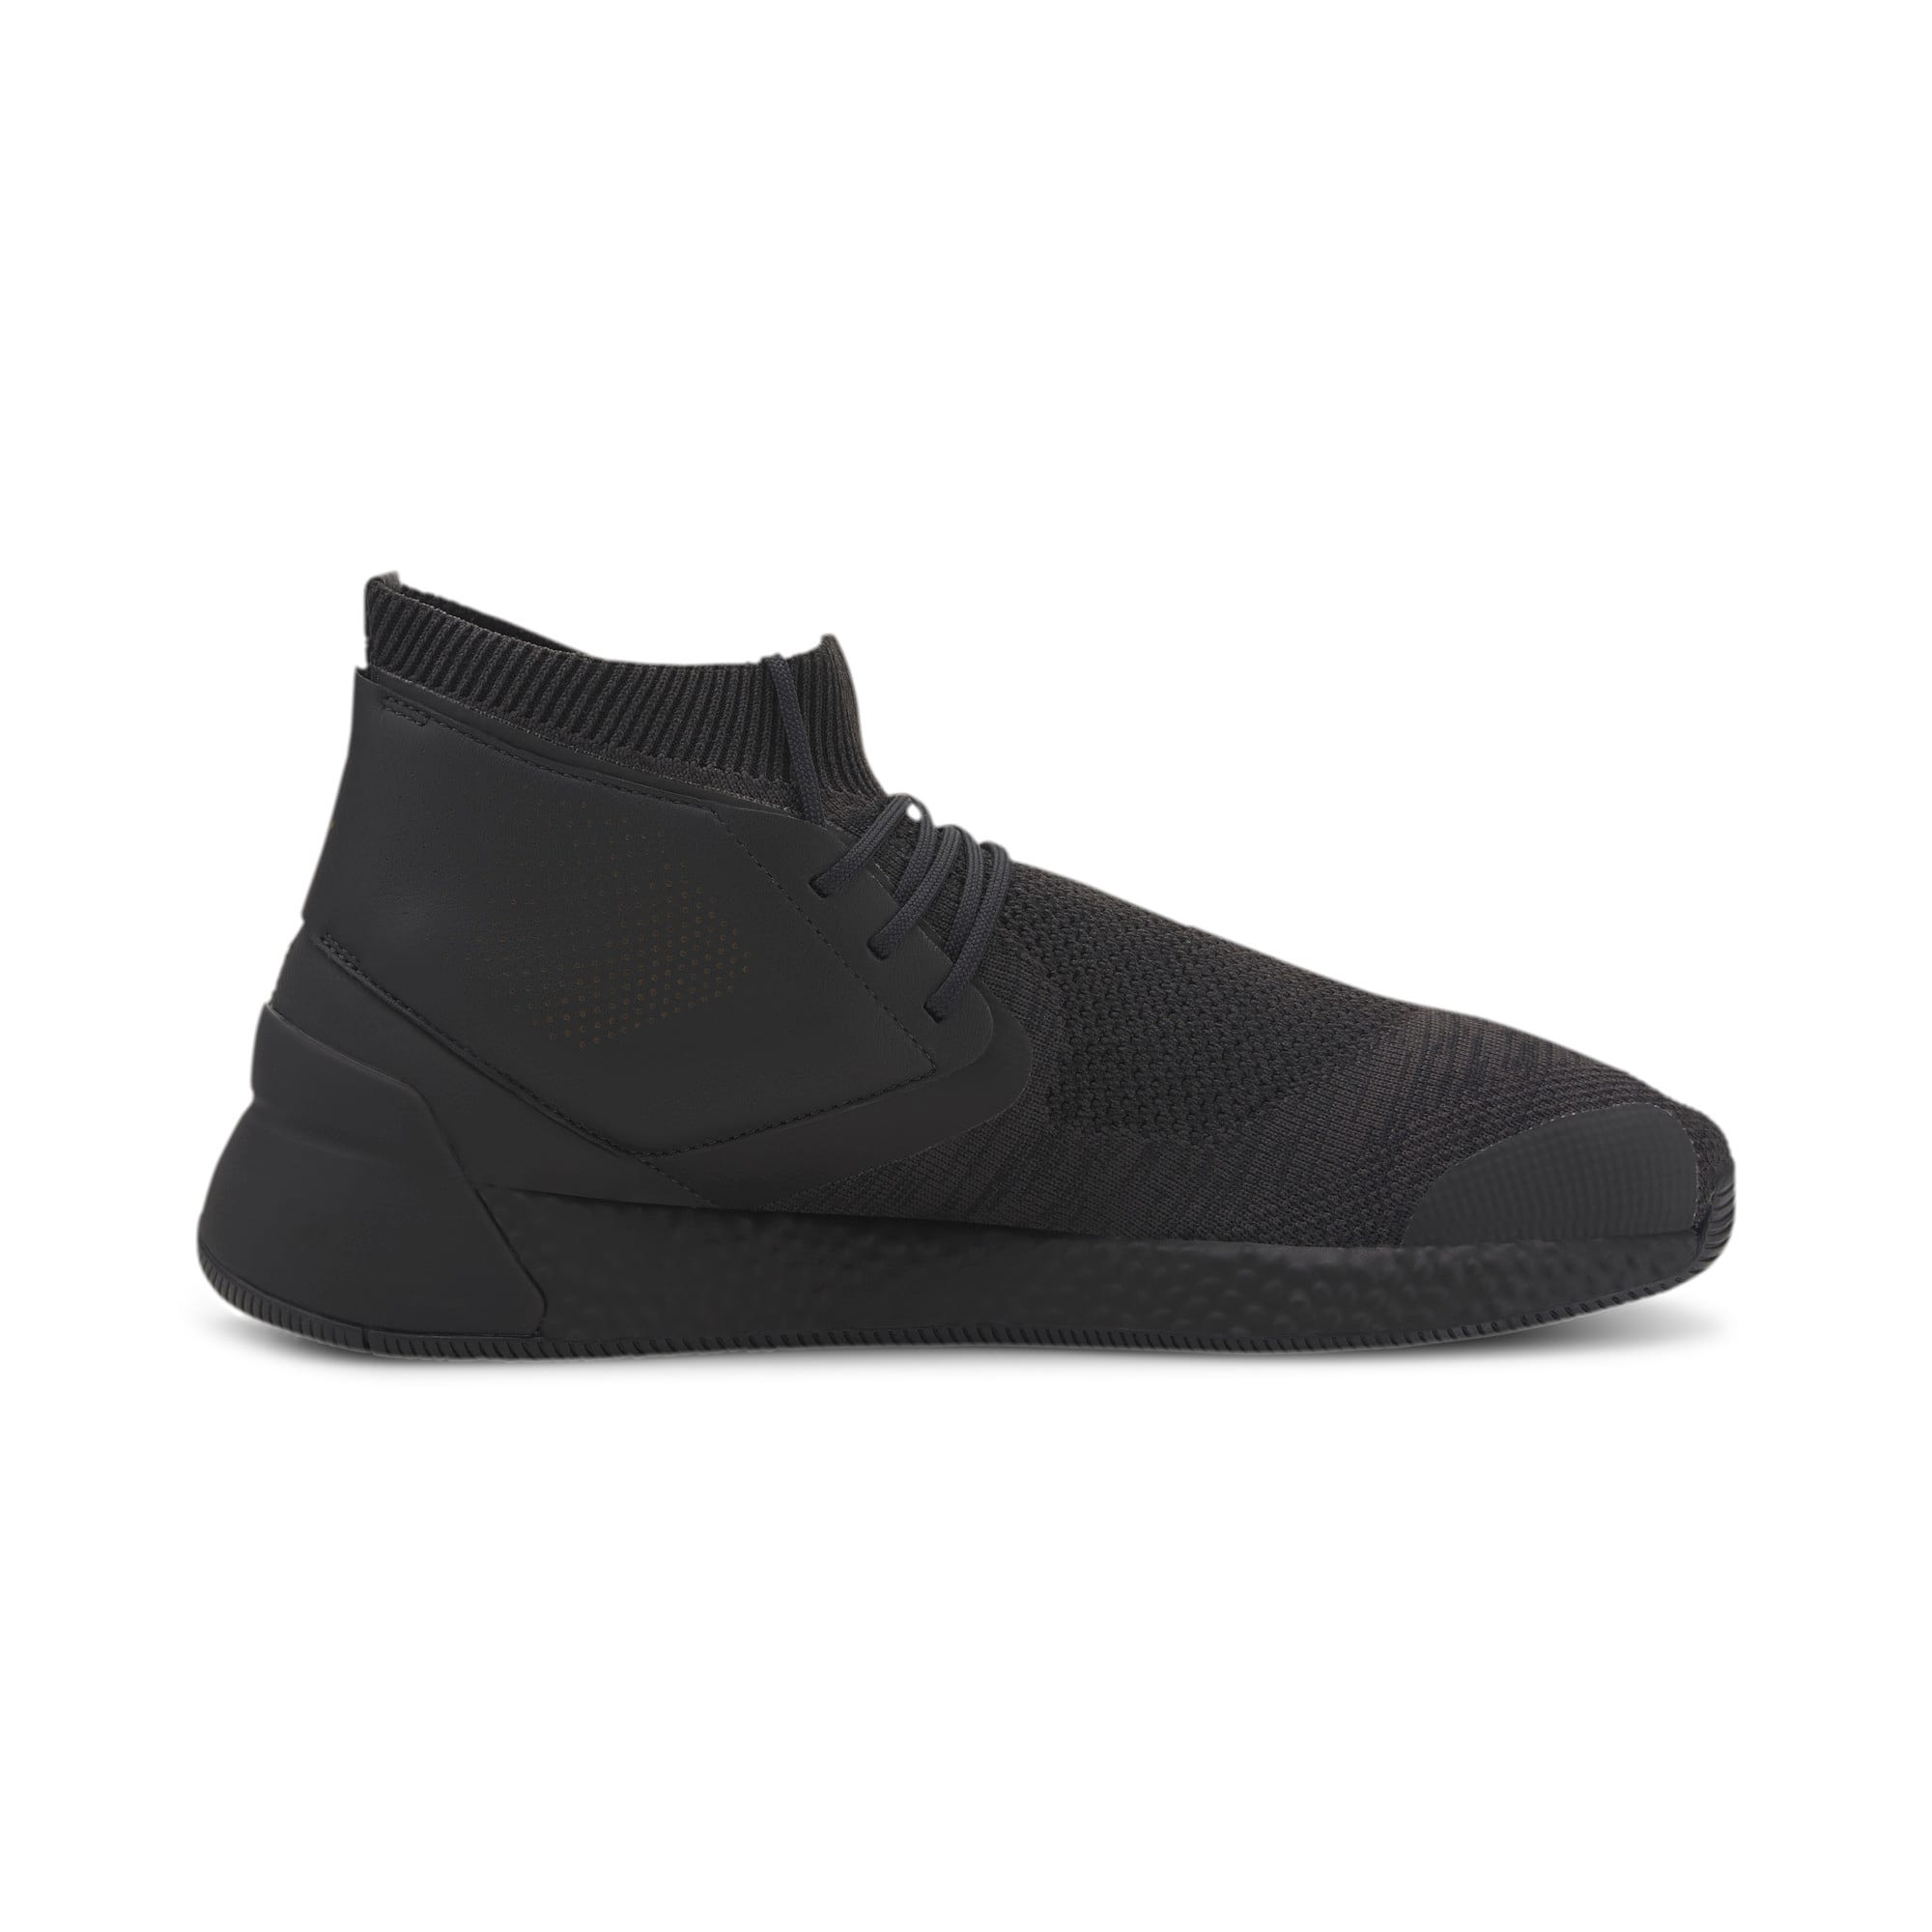 Thumbnail 6 of Porsche Design Hybrid evoKNIT Men's Trainers, Jet Black-Jet Black-JetBlack, medium